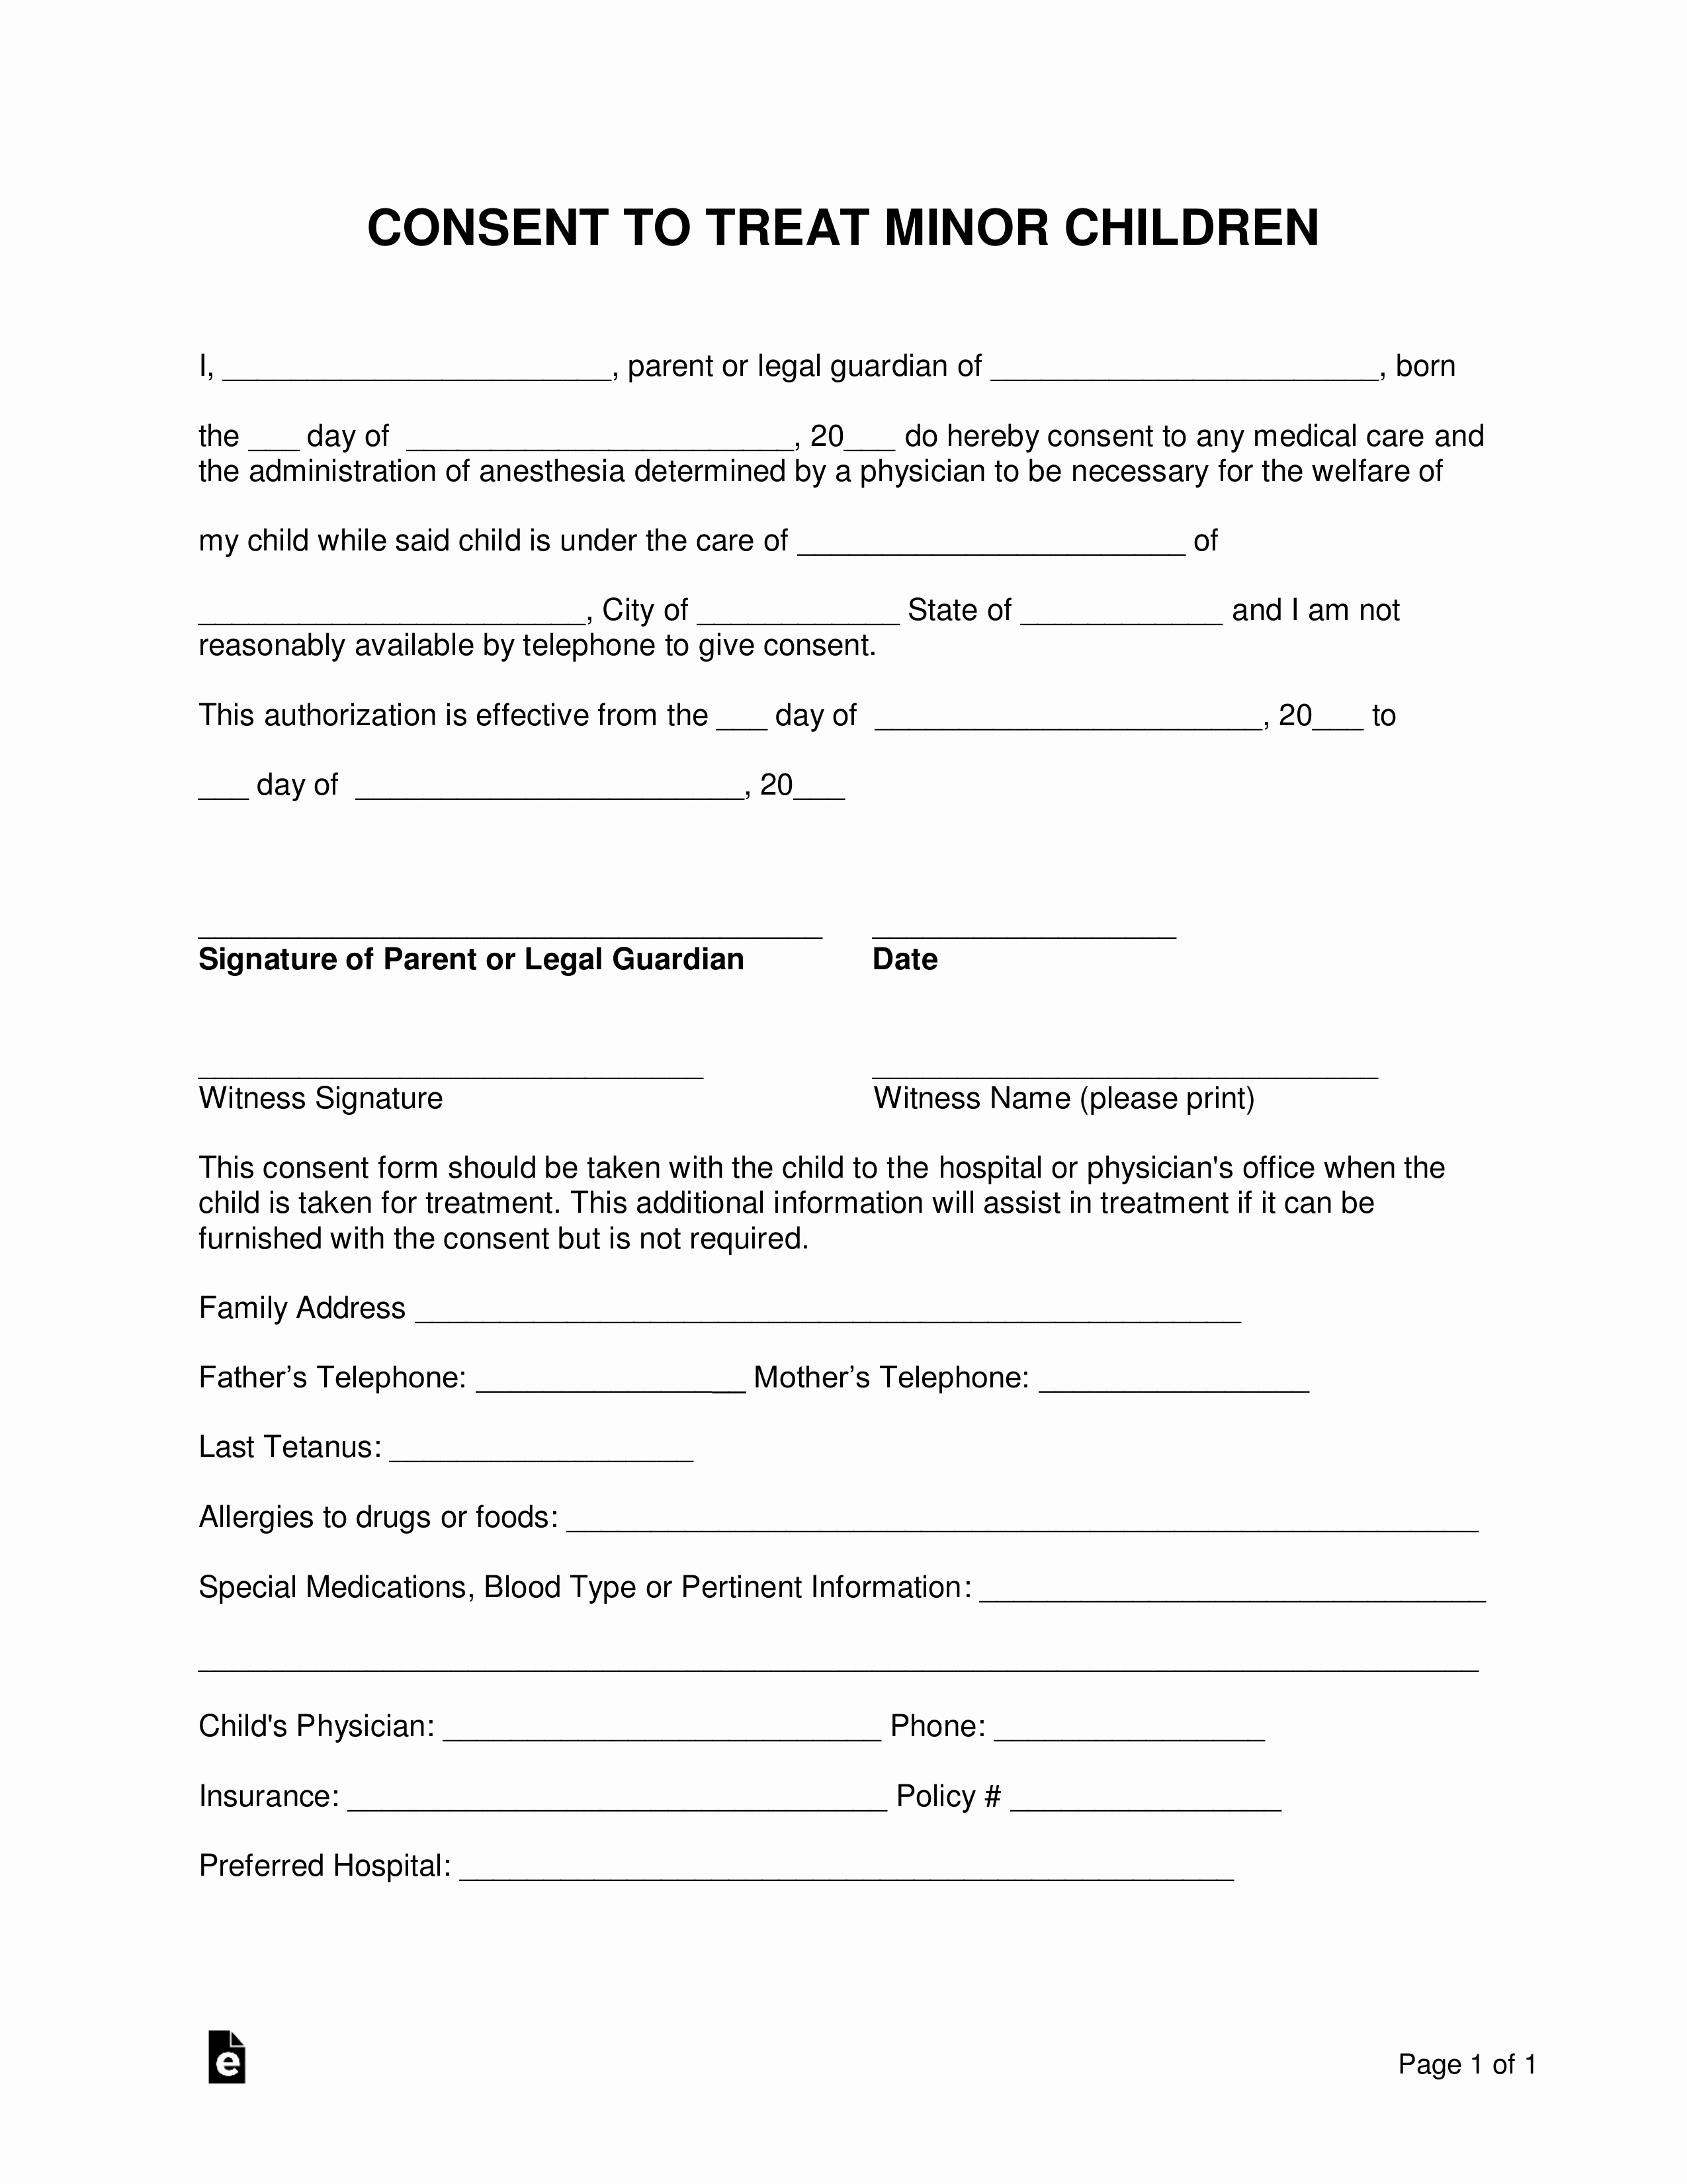 Free Printable Medical Release form Unique Free Minor Child Medical Consent form Word